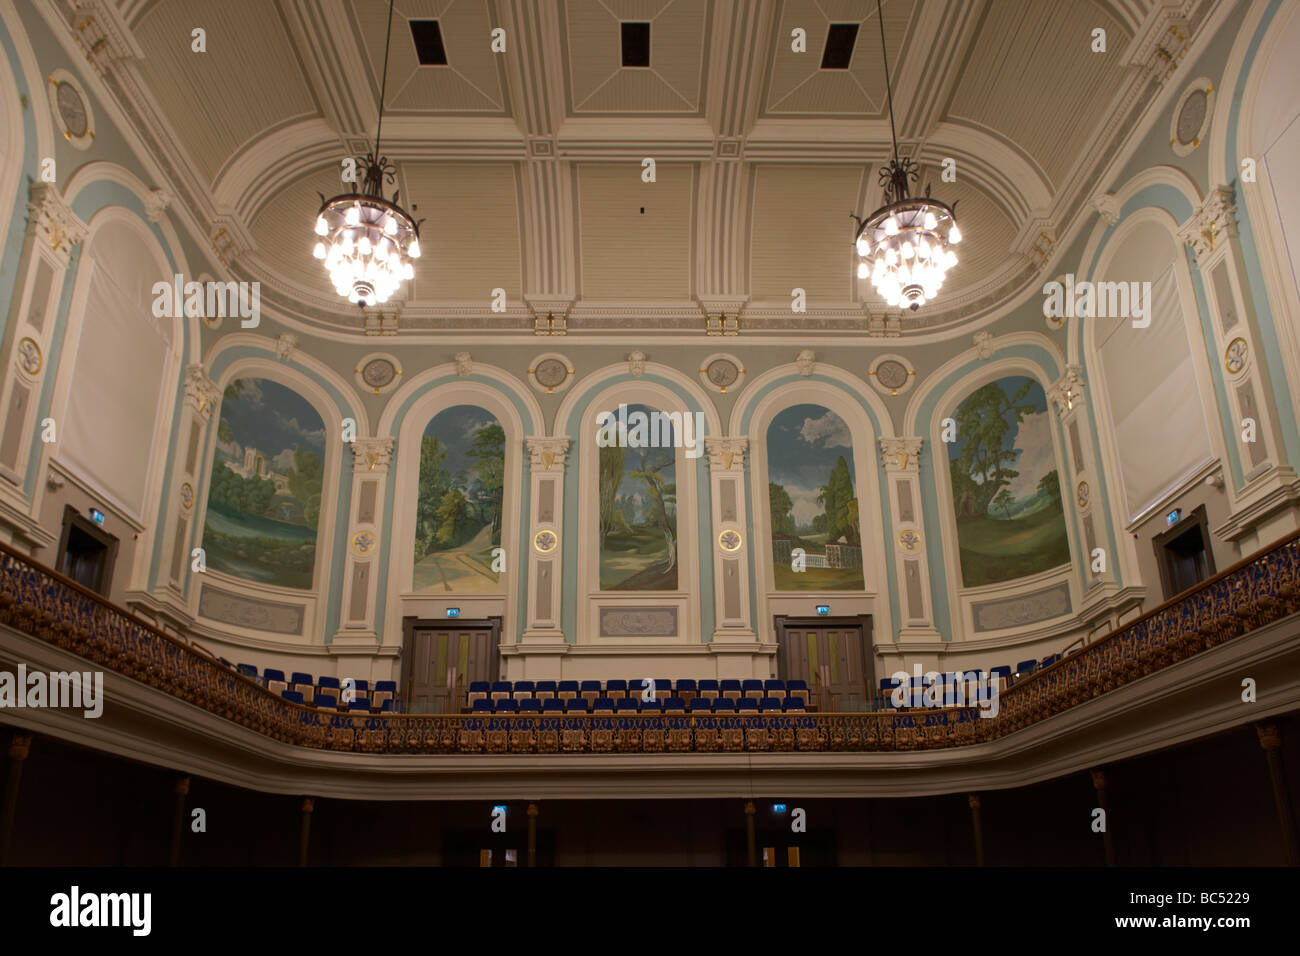 interior of the newly refurbished ulster hall venue in belfast northern ireland uk - Stock Image